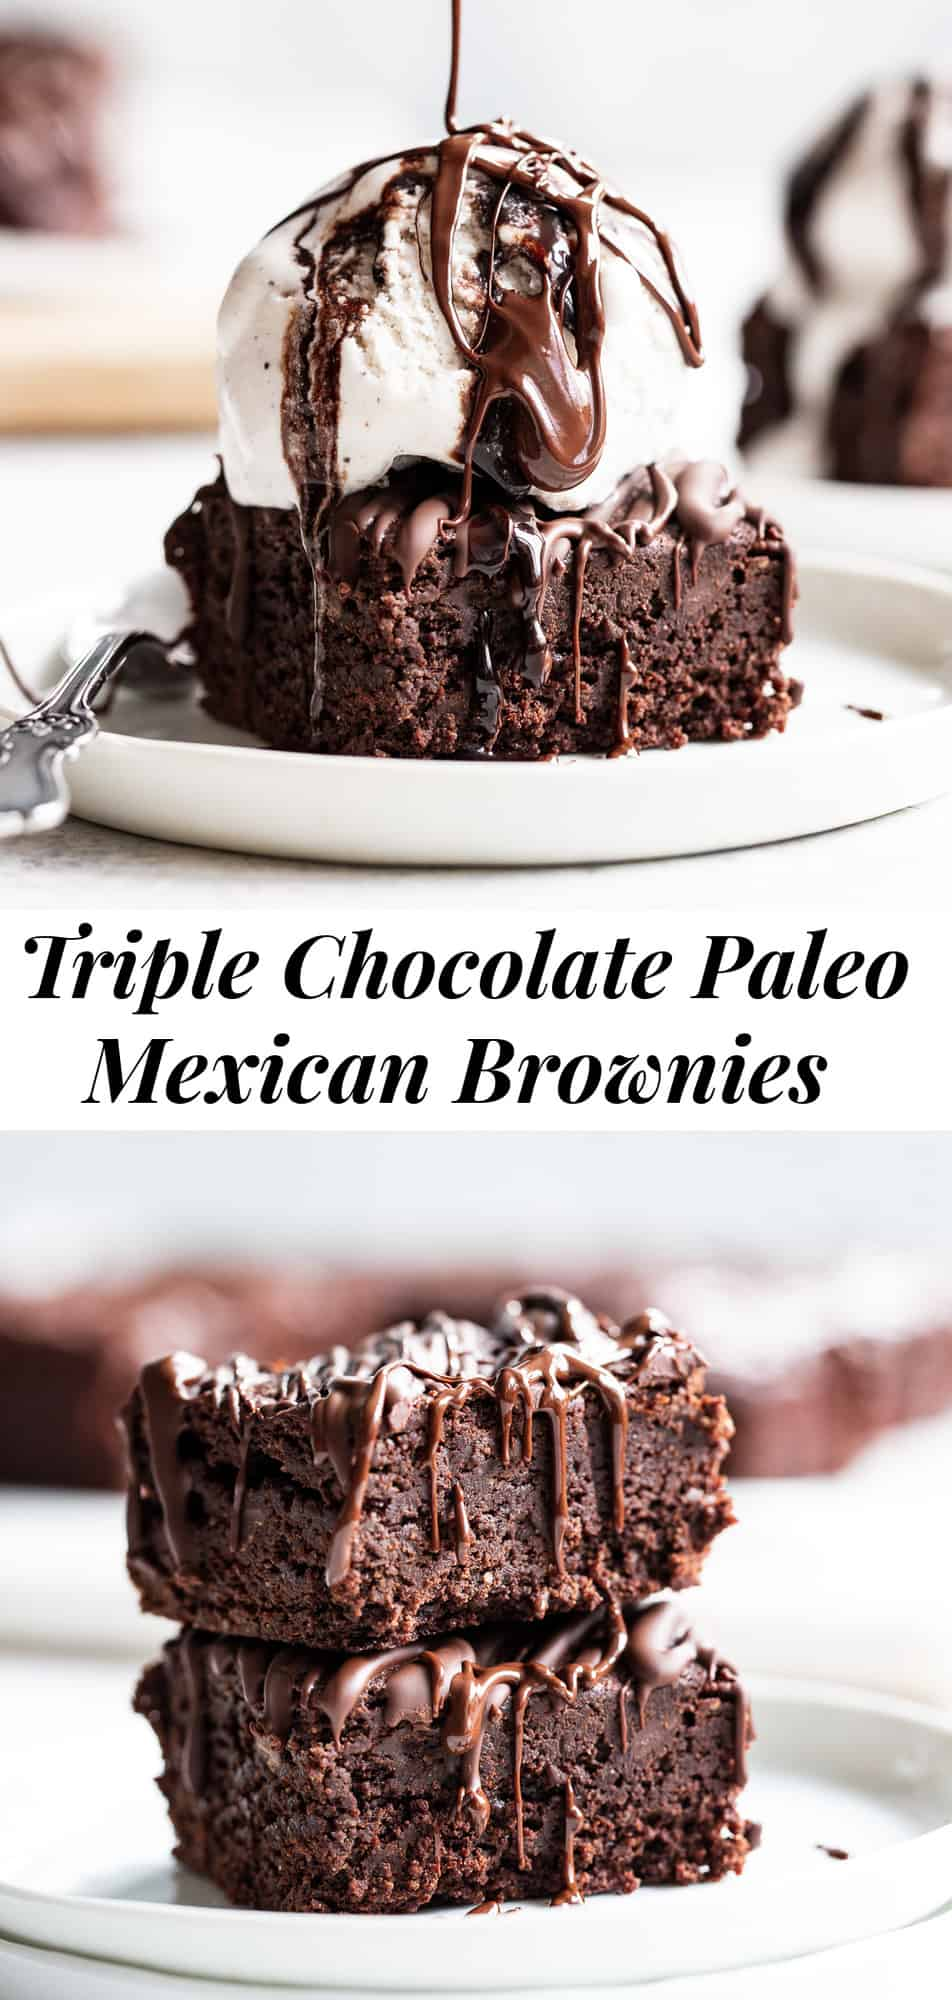 Fudgy Paleo Mexican brownies with just the right amount of spice and loads of chocolate! These triple chocolate brownies are easy to make and perfect when you need a treat but want to keep it healthy. They're gluten free, dairy free and refined sugar free. #paleo #paleobaking #brownies #glutenfree #glutenfreebaking #healthybaking